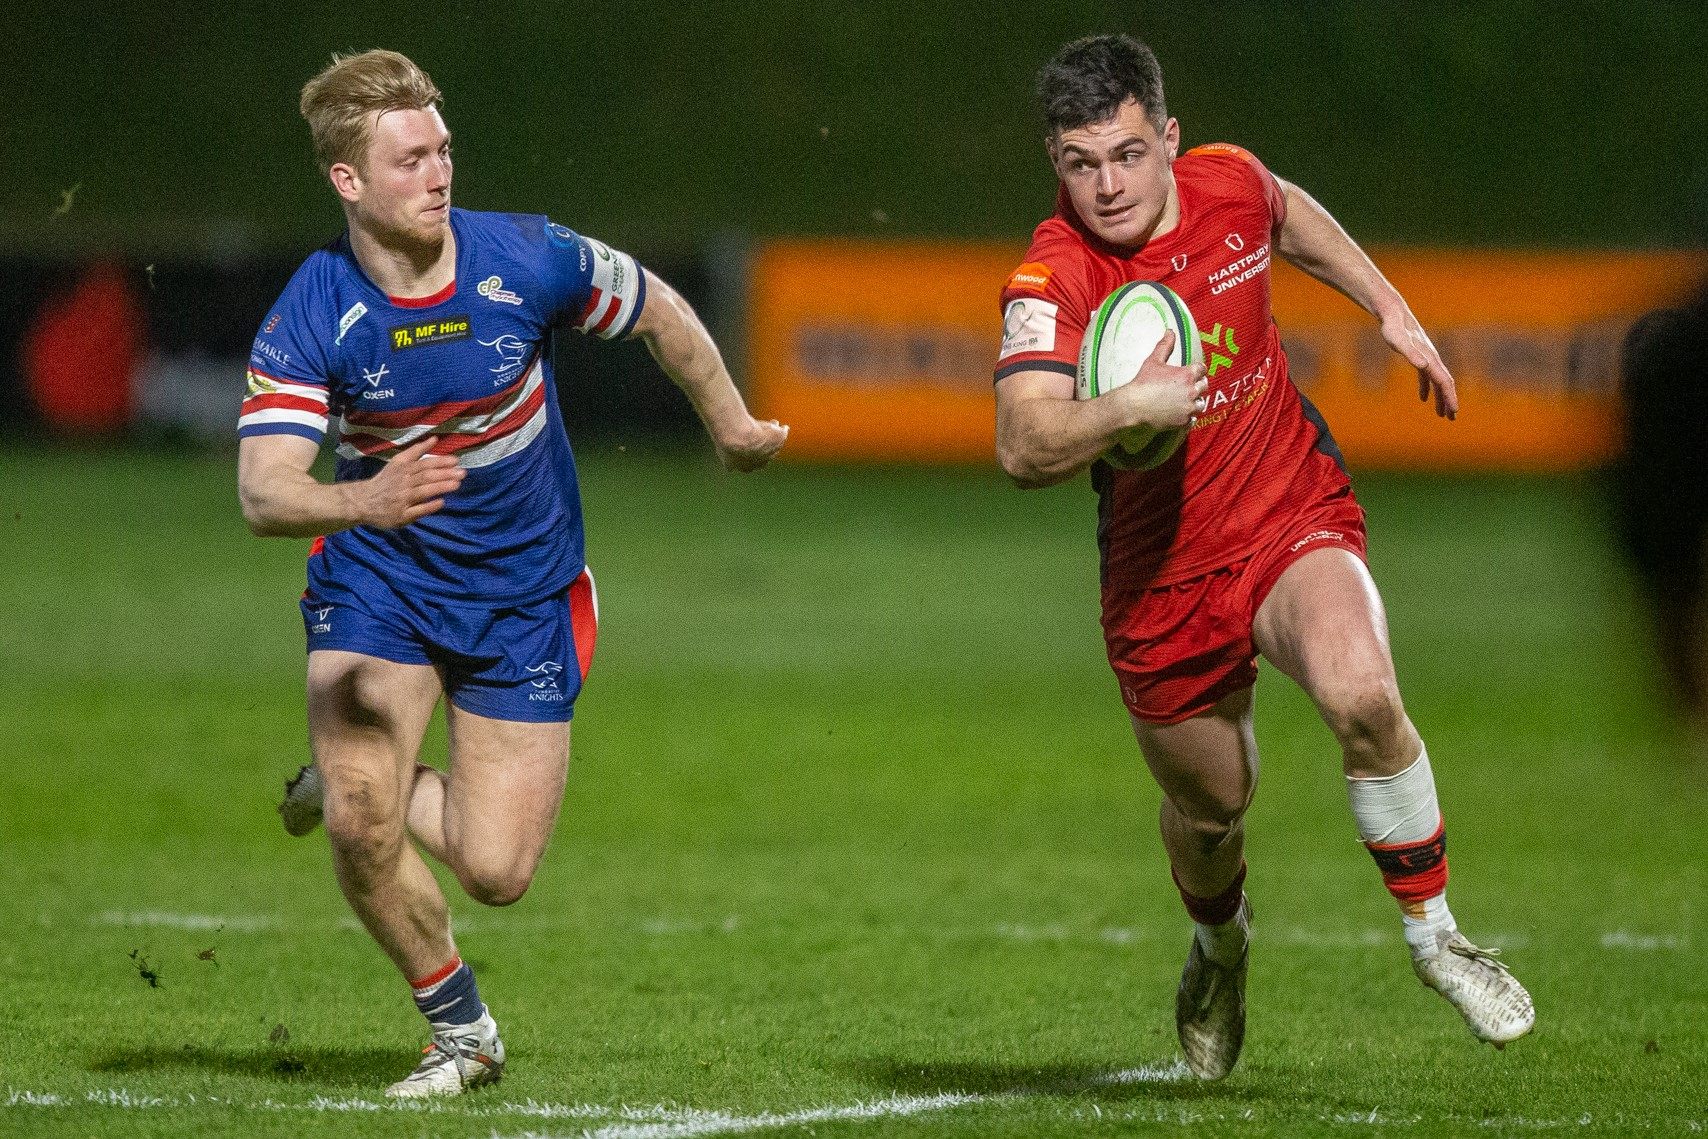 Robbie Smith Hartpury